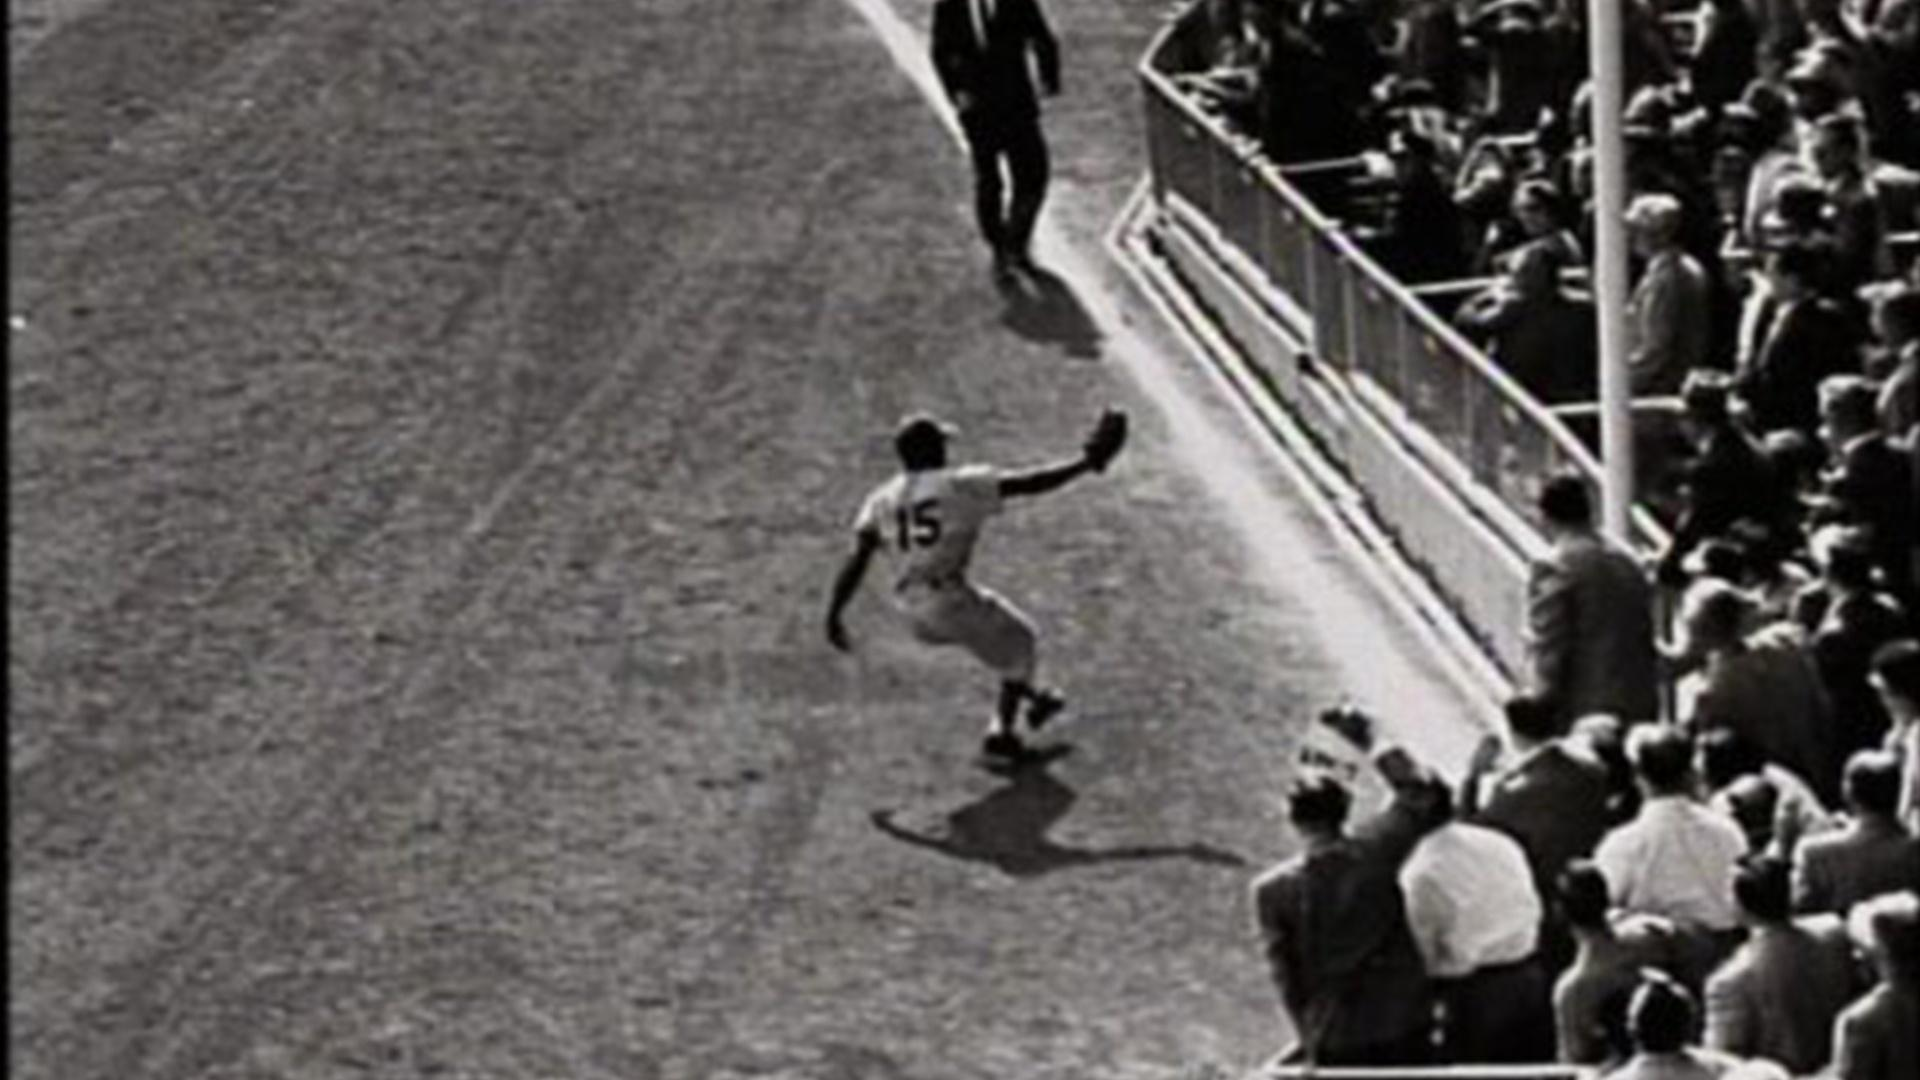 A baseball player on a field reaches out his glove to catch a fly ball.